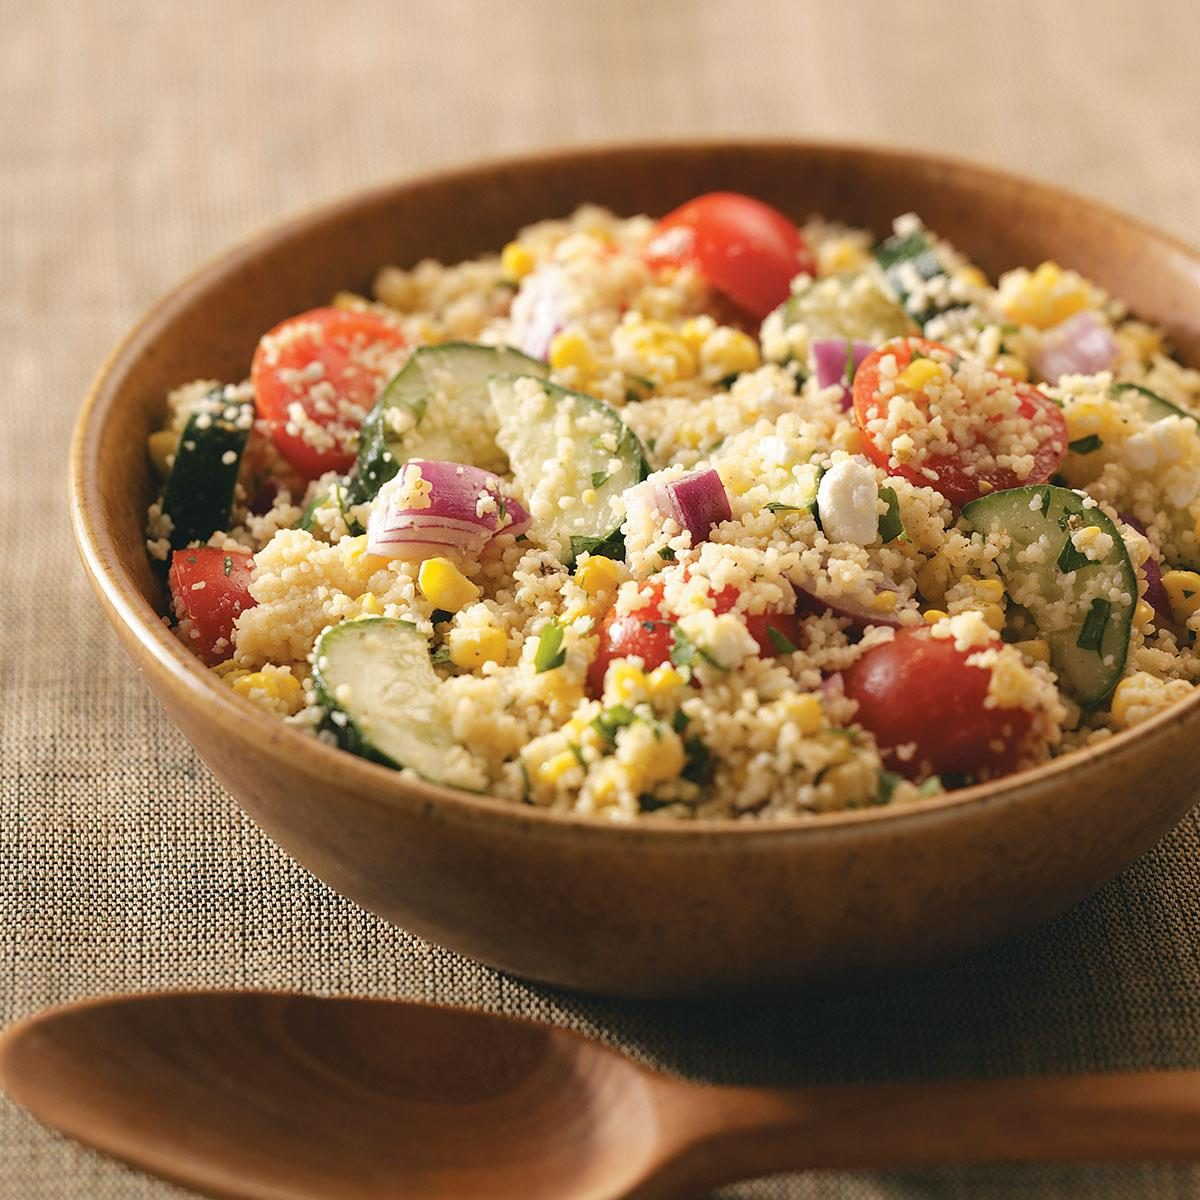 Summer garden couscous salad recipe taste of home for Best summer pasta salad recipes ever